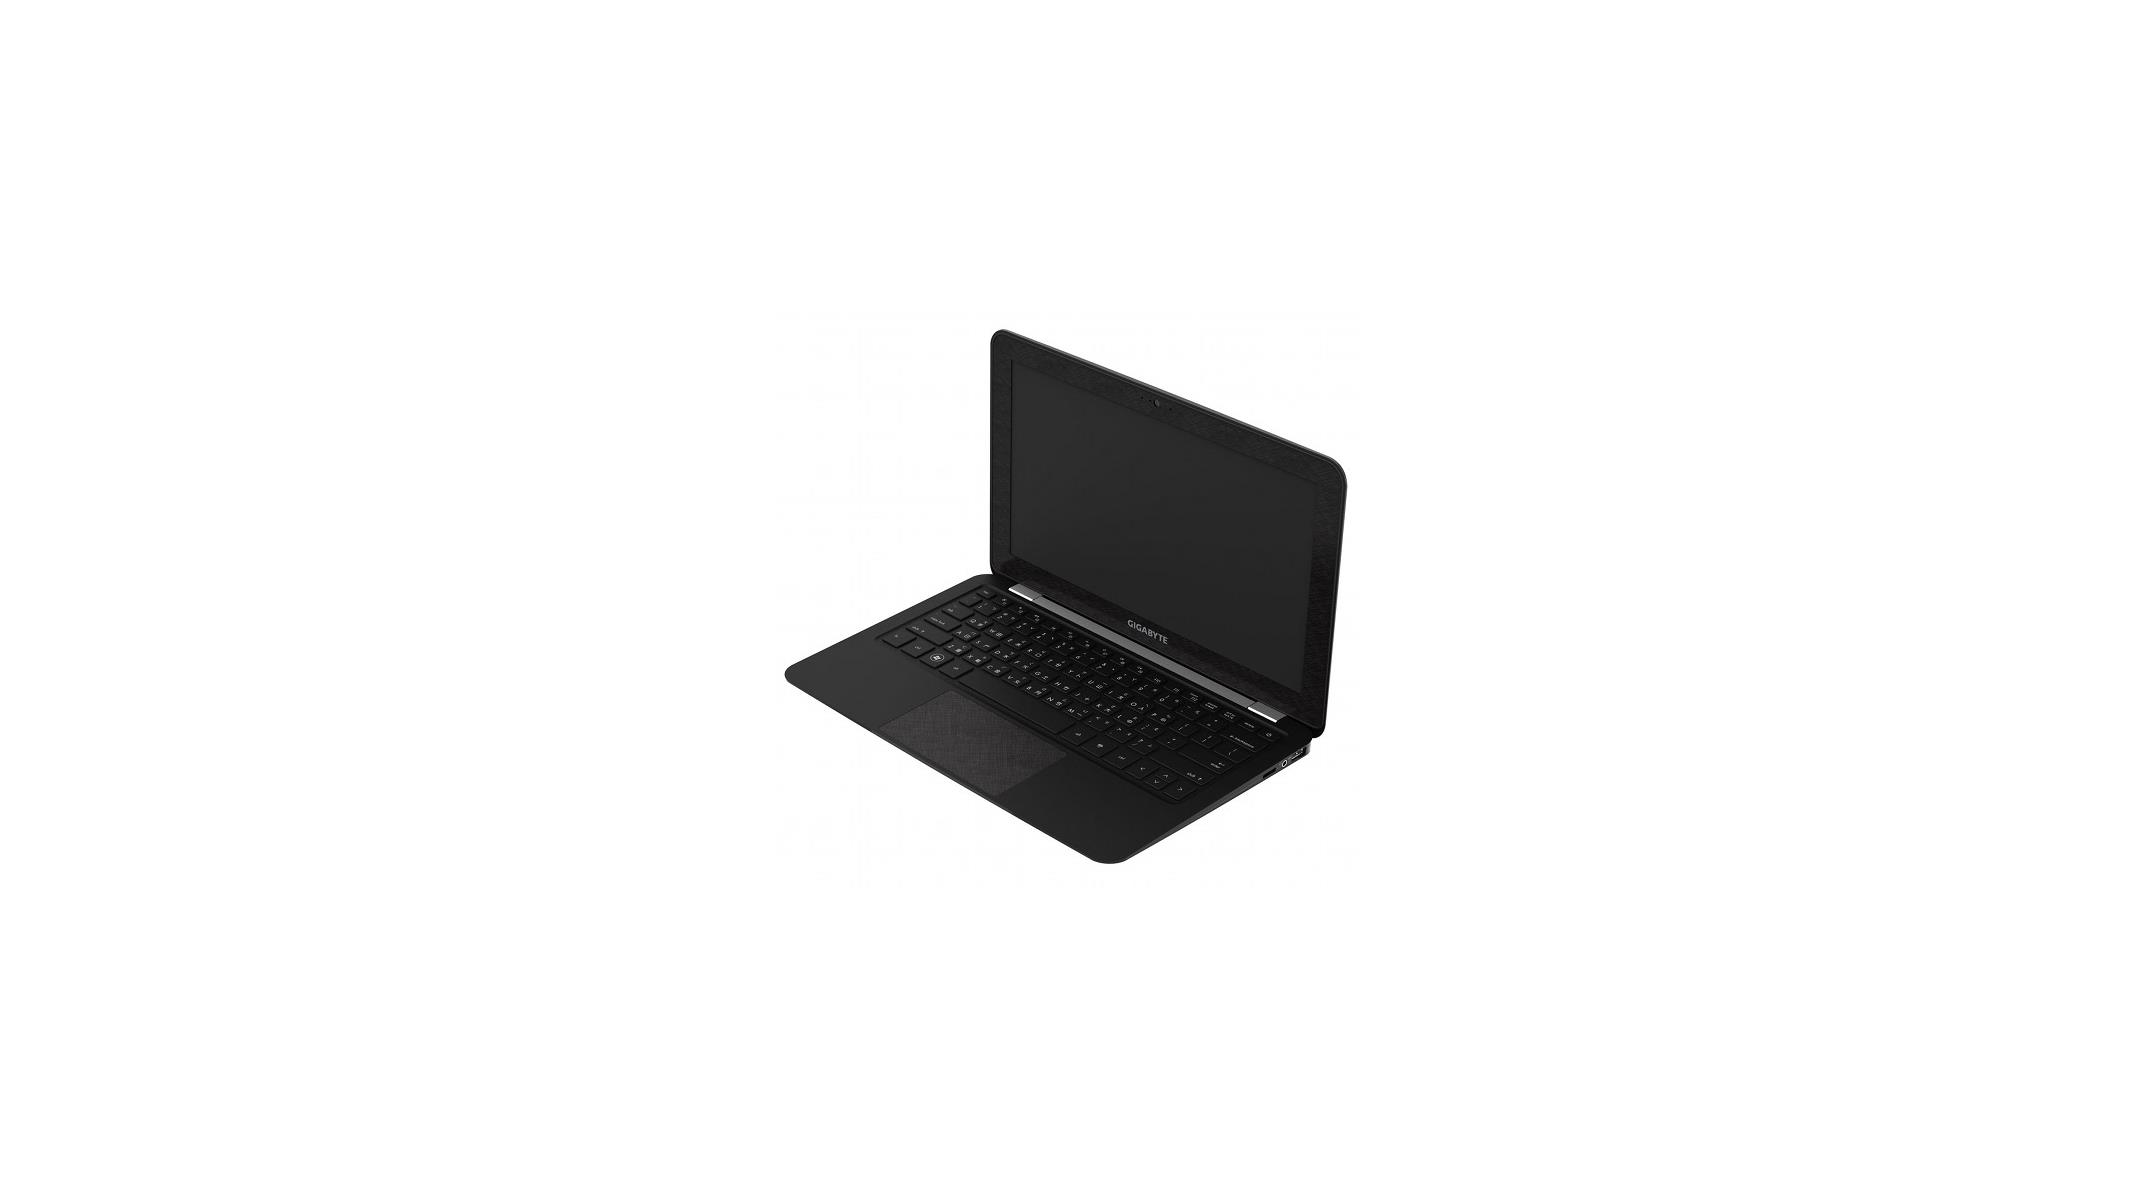 GIGABYTE U2440N NOTEBOOK TOUCHPAD DRIVERS FOR WINDOWS XP